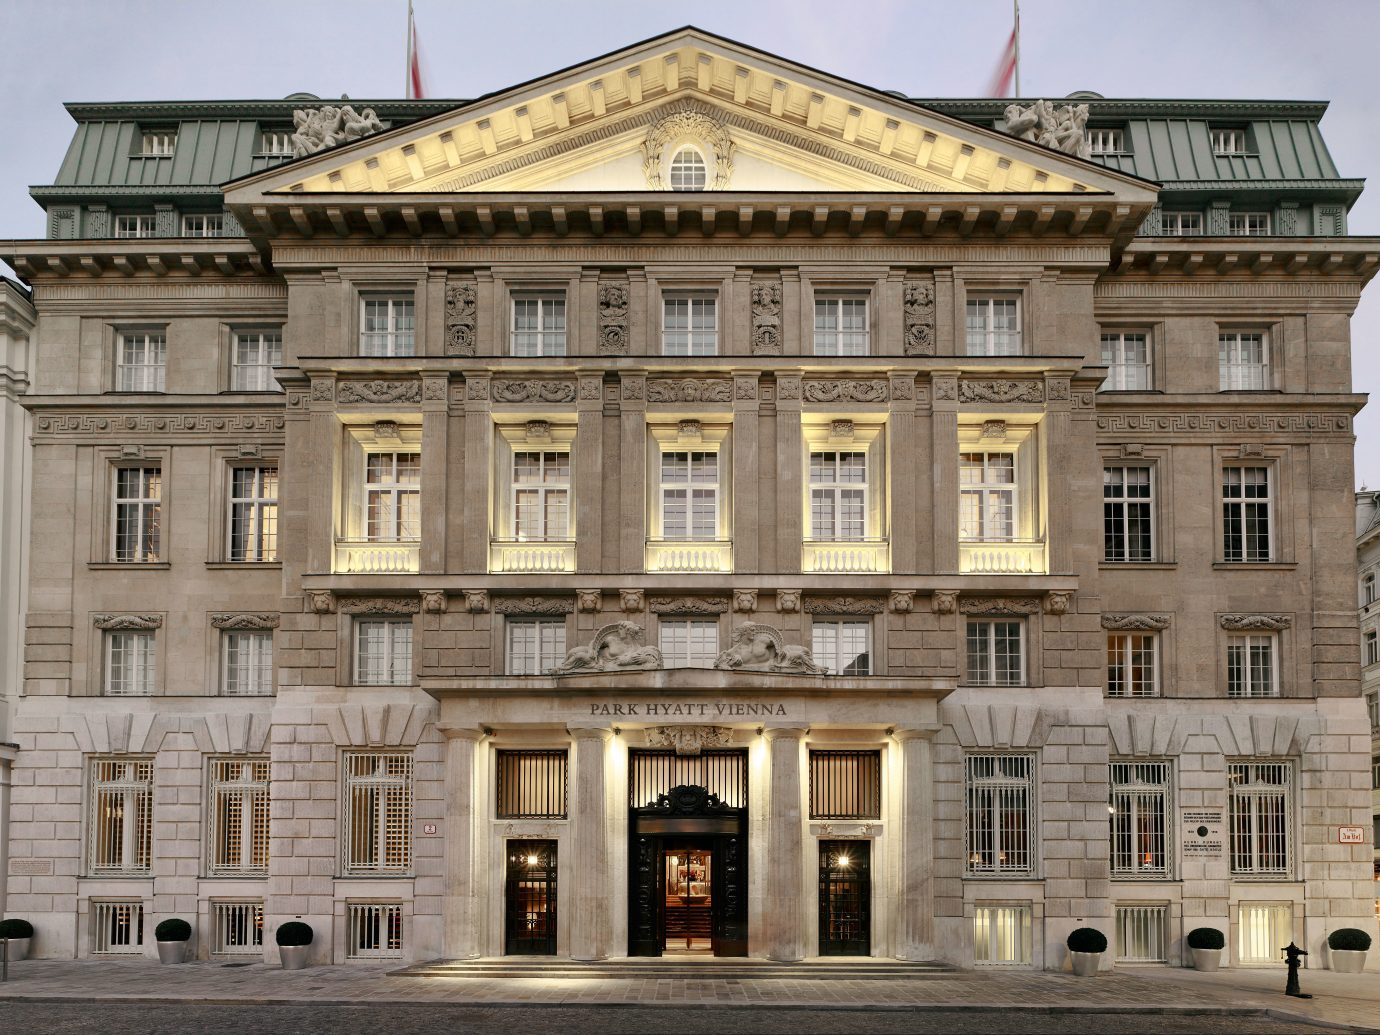 Architecture Austria Elegant europe Exterior Historic Hotels Romantic Vienna building outdoor sky government building classical architecture landmark palace facade opera house plaza estate ancient roman architecture big ancient history tourist attraction synagogue tall